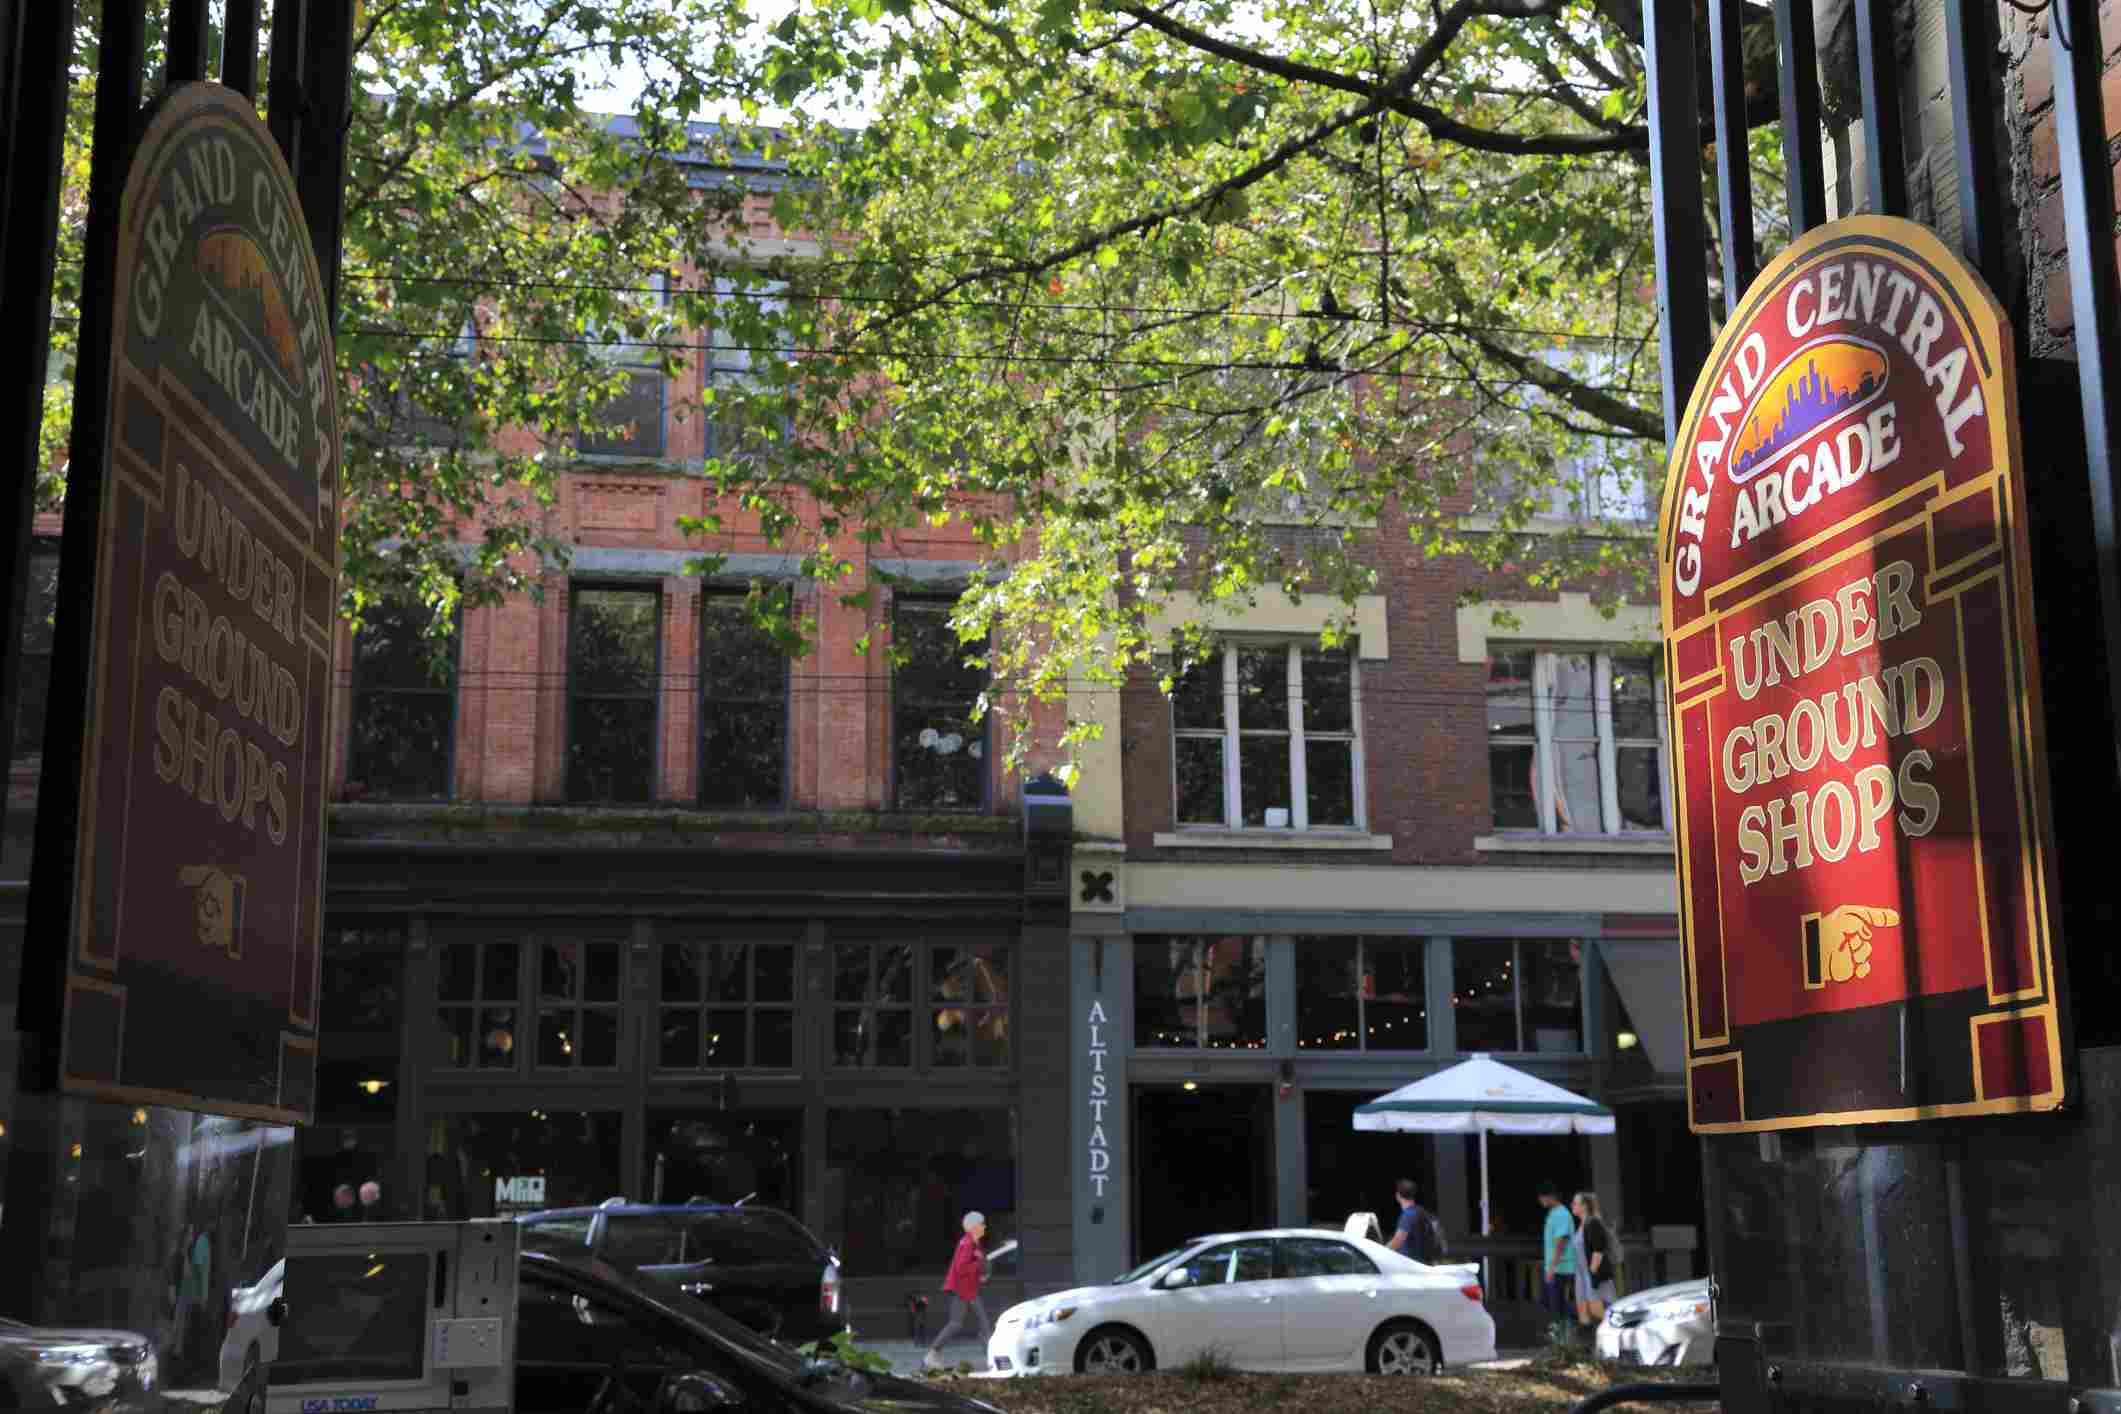 Shops in Pioneer Square